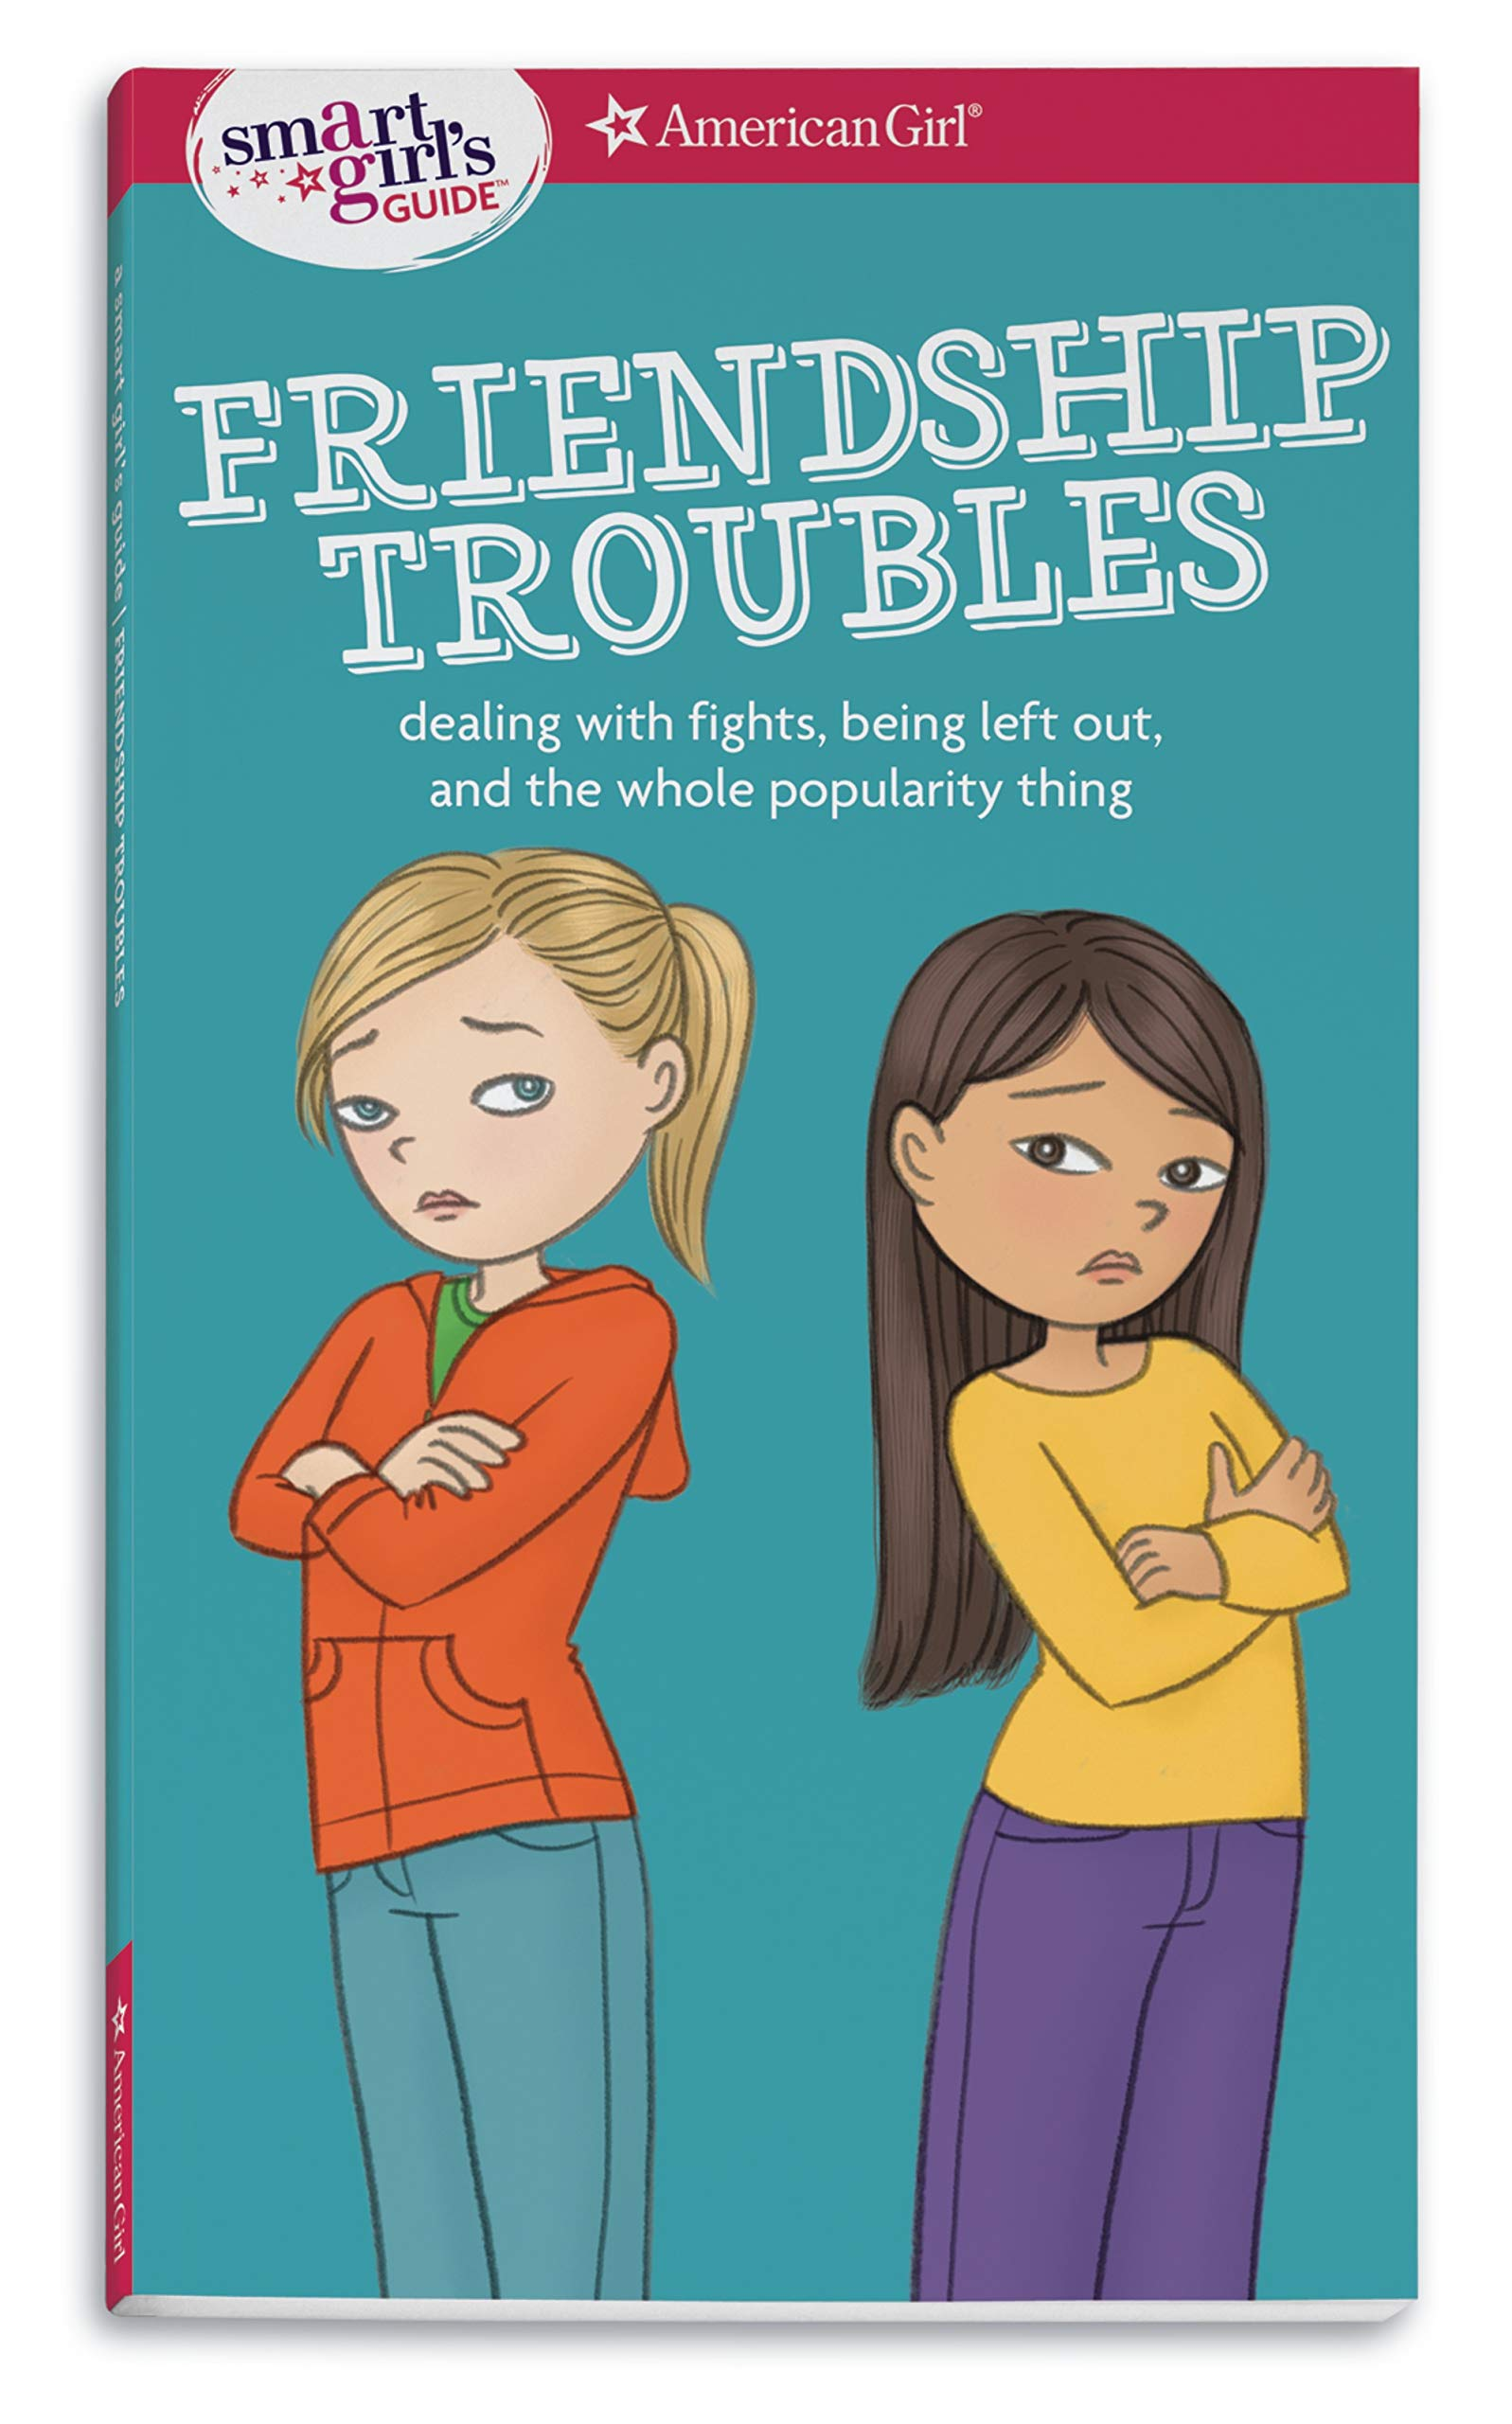 a smart girls guide to friendship troubles free download